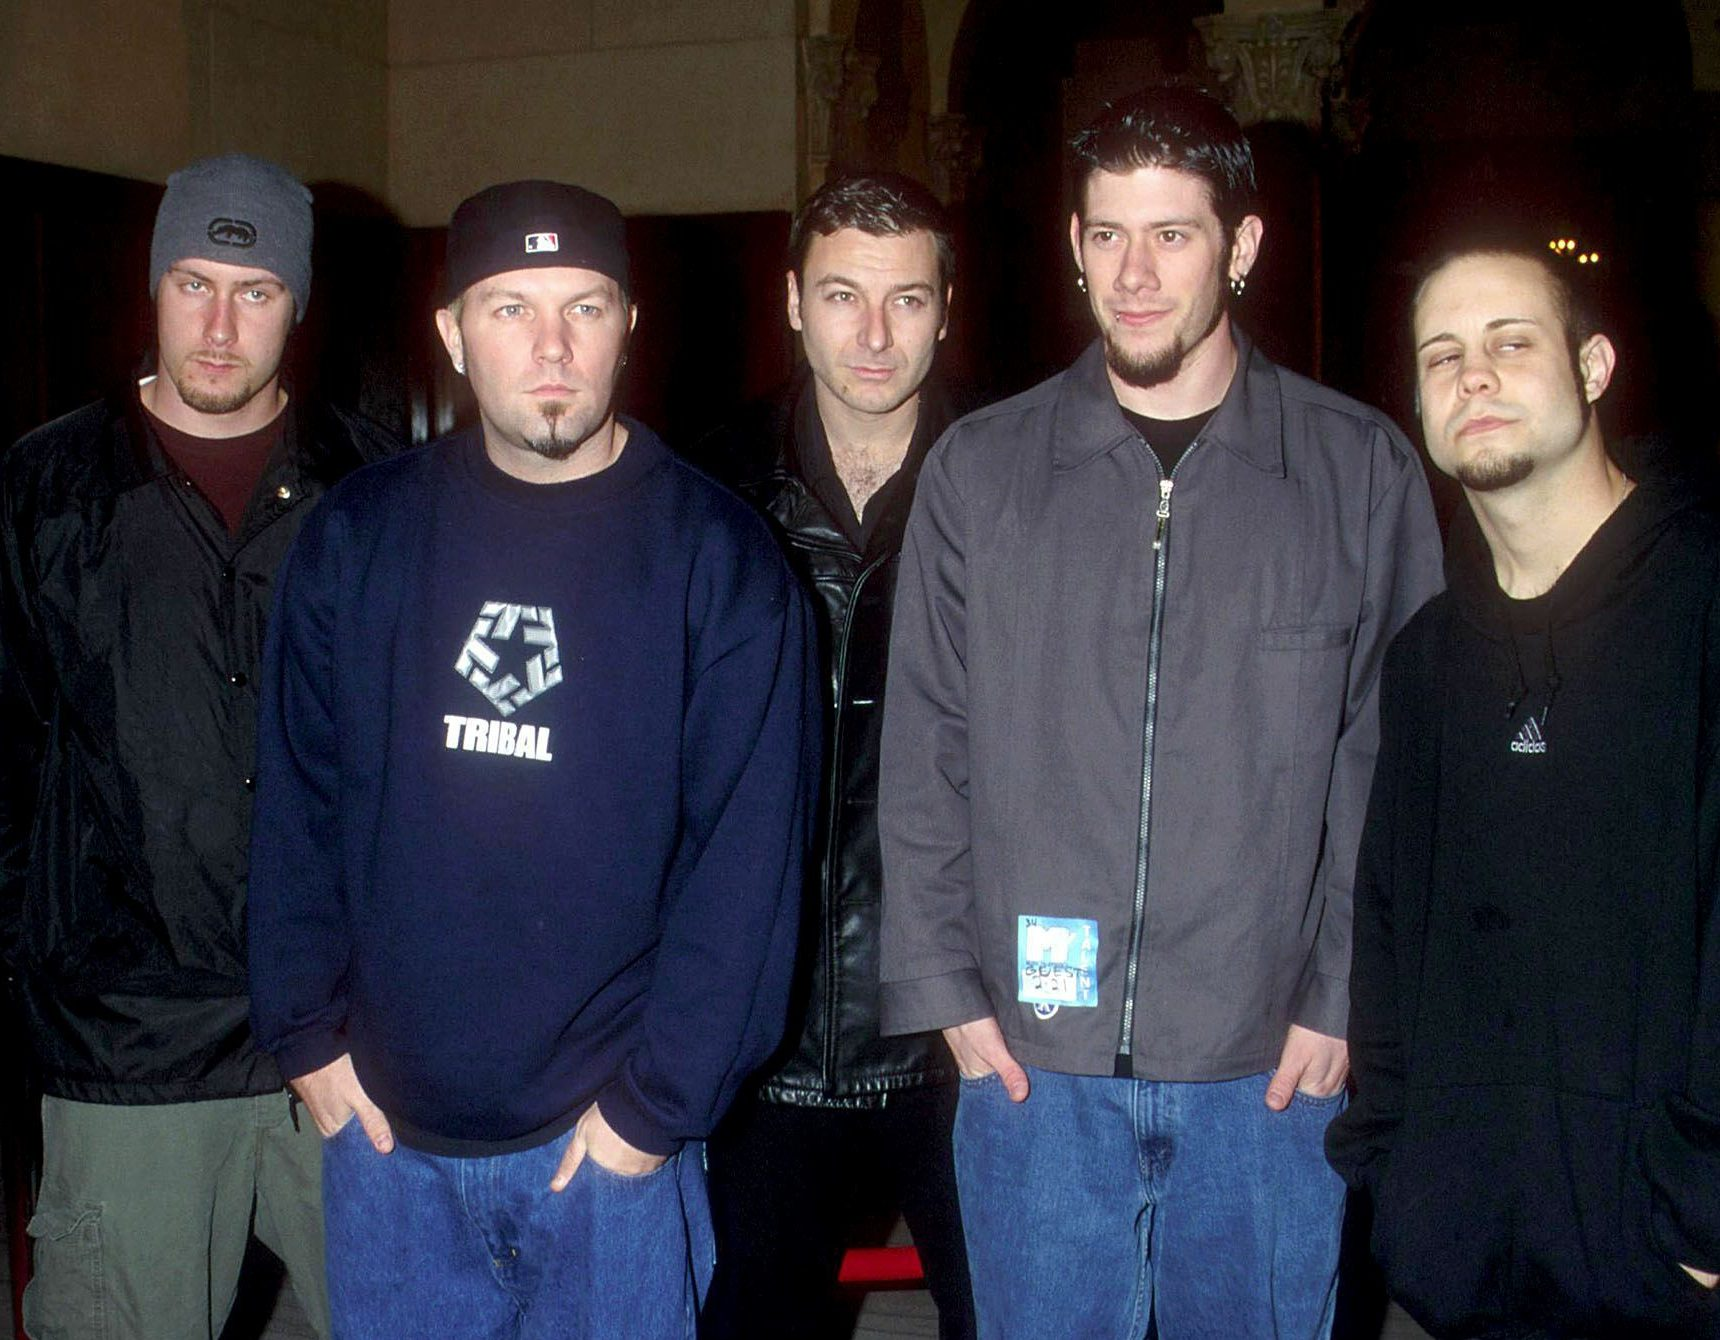 GettyImages 1591501 e1629290930542 Remember Fred Durst From Limp Bizkit? Here's What He Looks Like Now